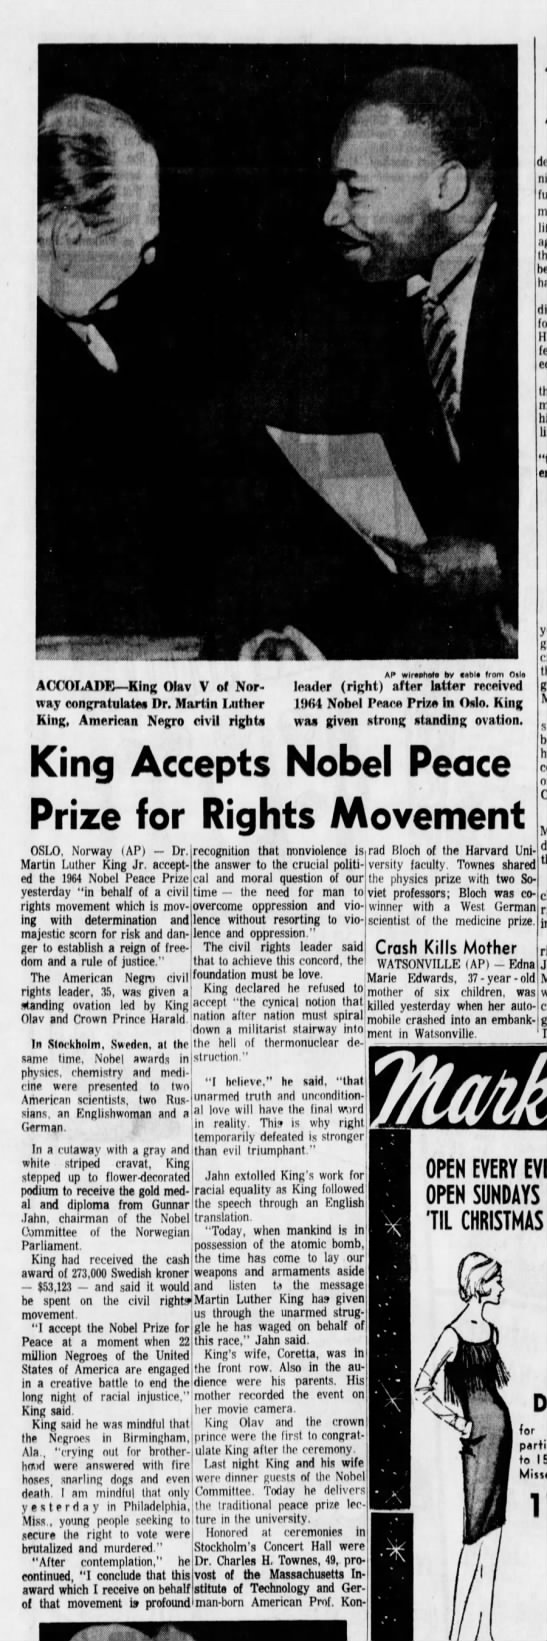 Dec 1964: M.L. King Jr. accepts the Nobel Peace Prize - sJ , A he ACCOLADE King Olav V of Norway Norway...